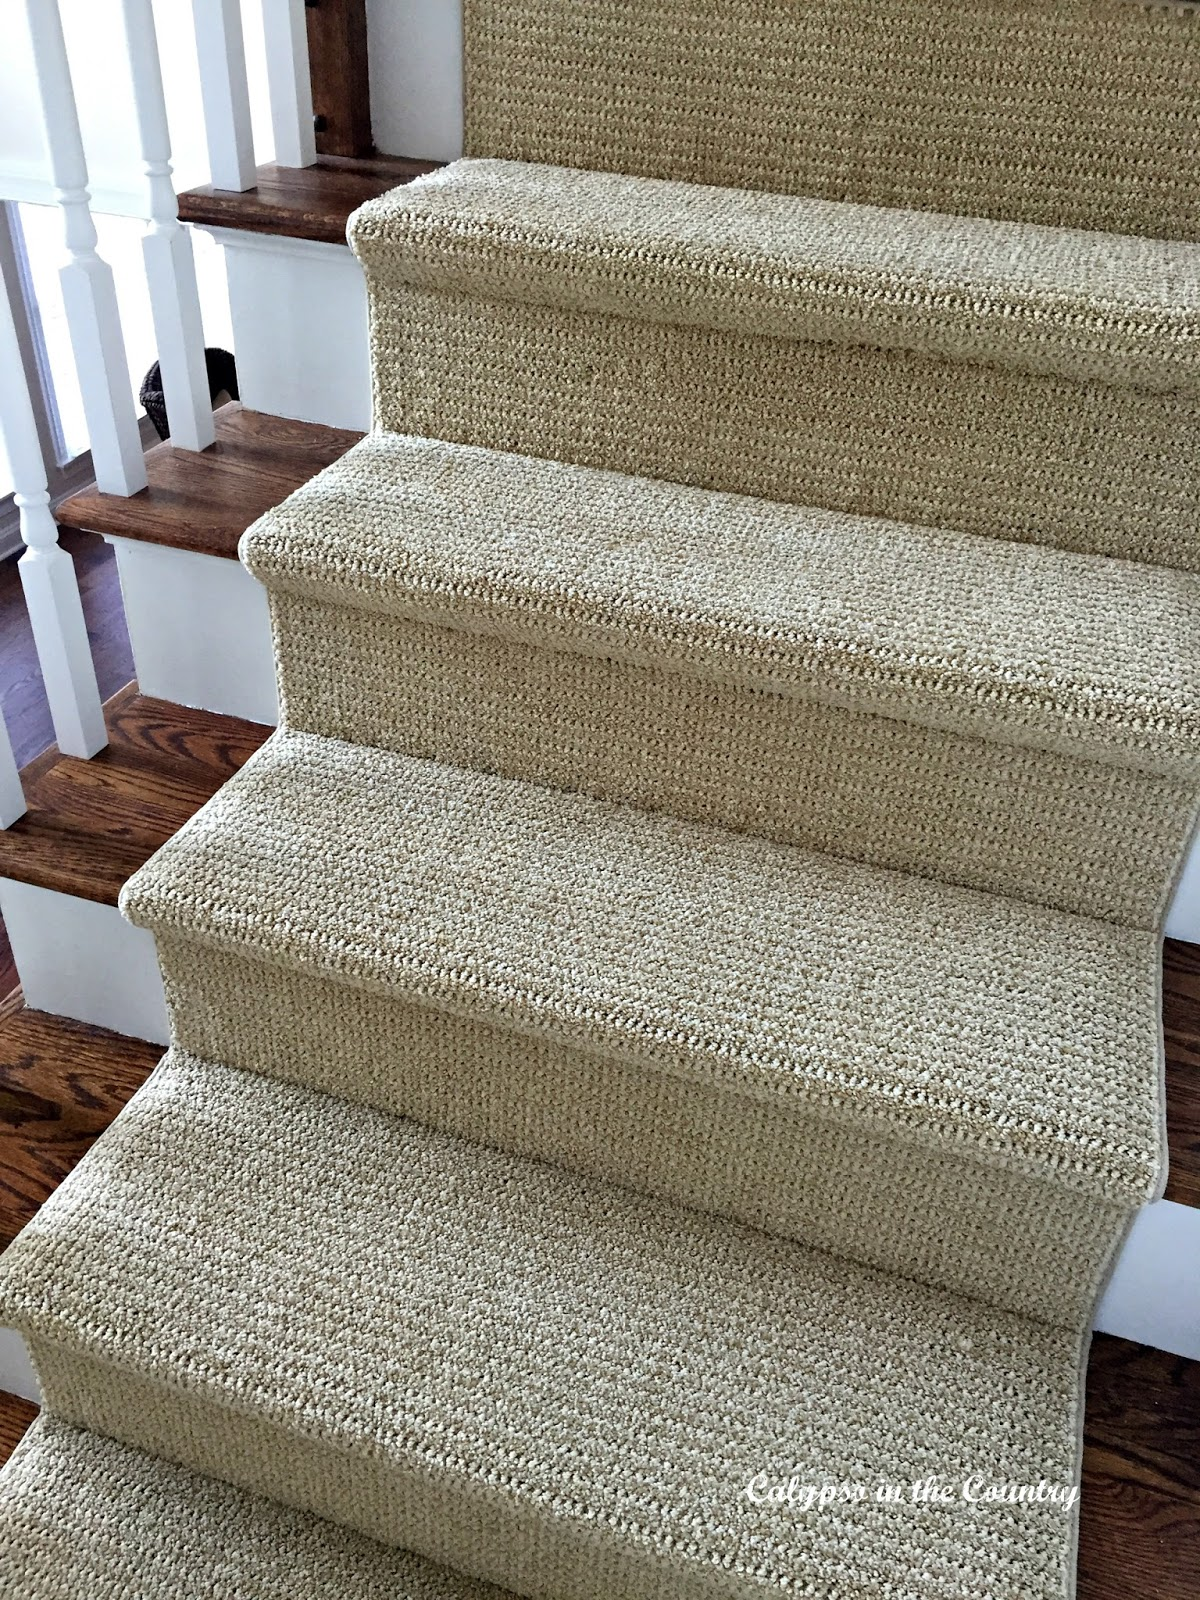 A Sisal Substitute For The Stairs Calypso In Country